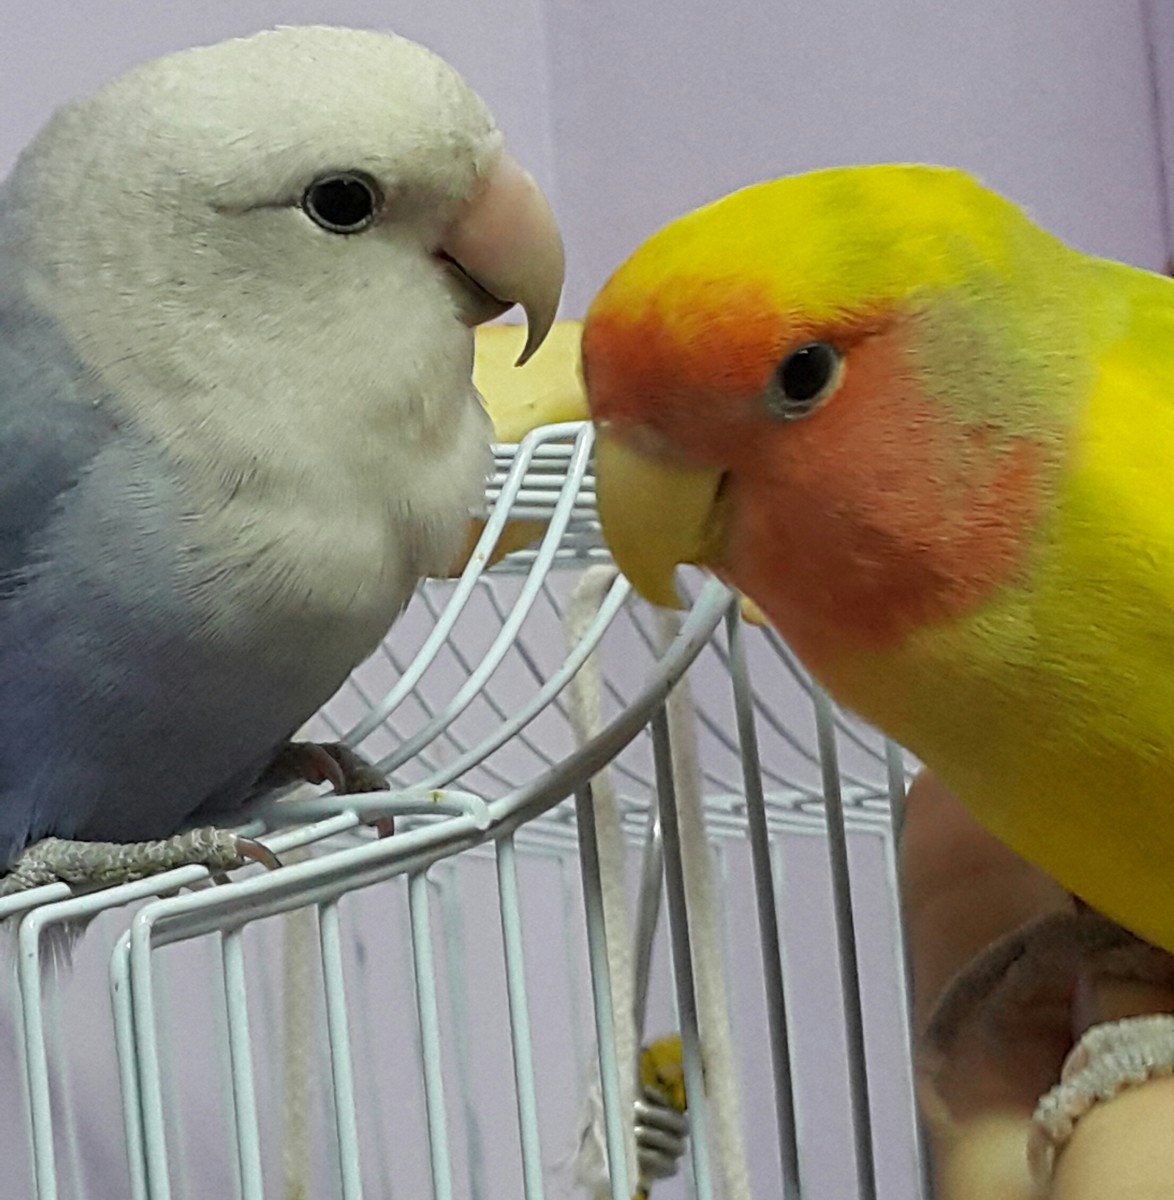 Picture showing a peach-faced male lovebird, Mumu [right] with his mate Lulu [left] who is a white-faced violet roseicollis peach-faced female lovebird.